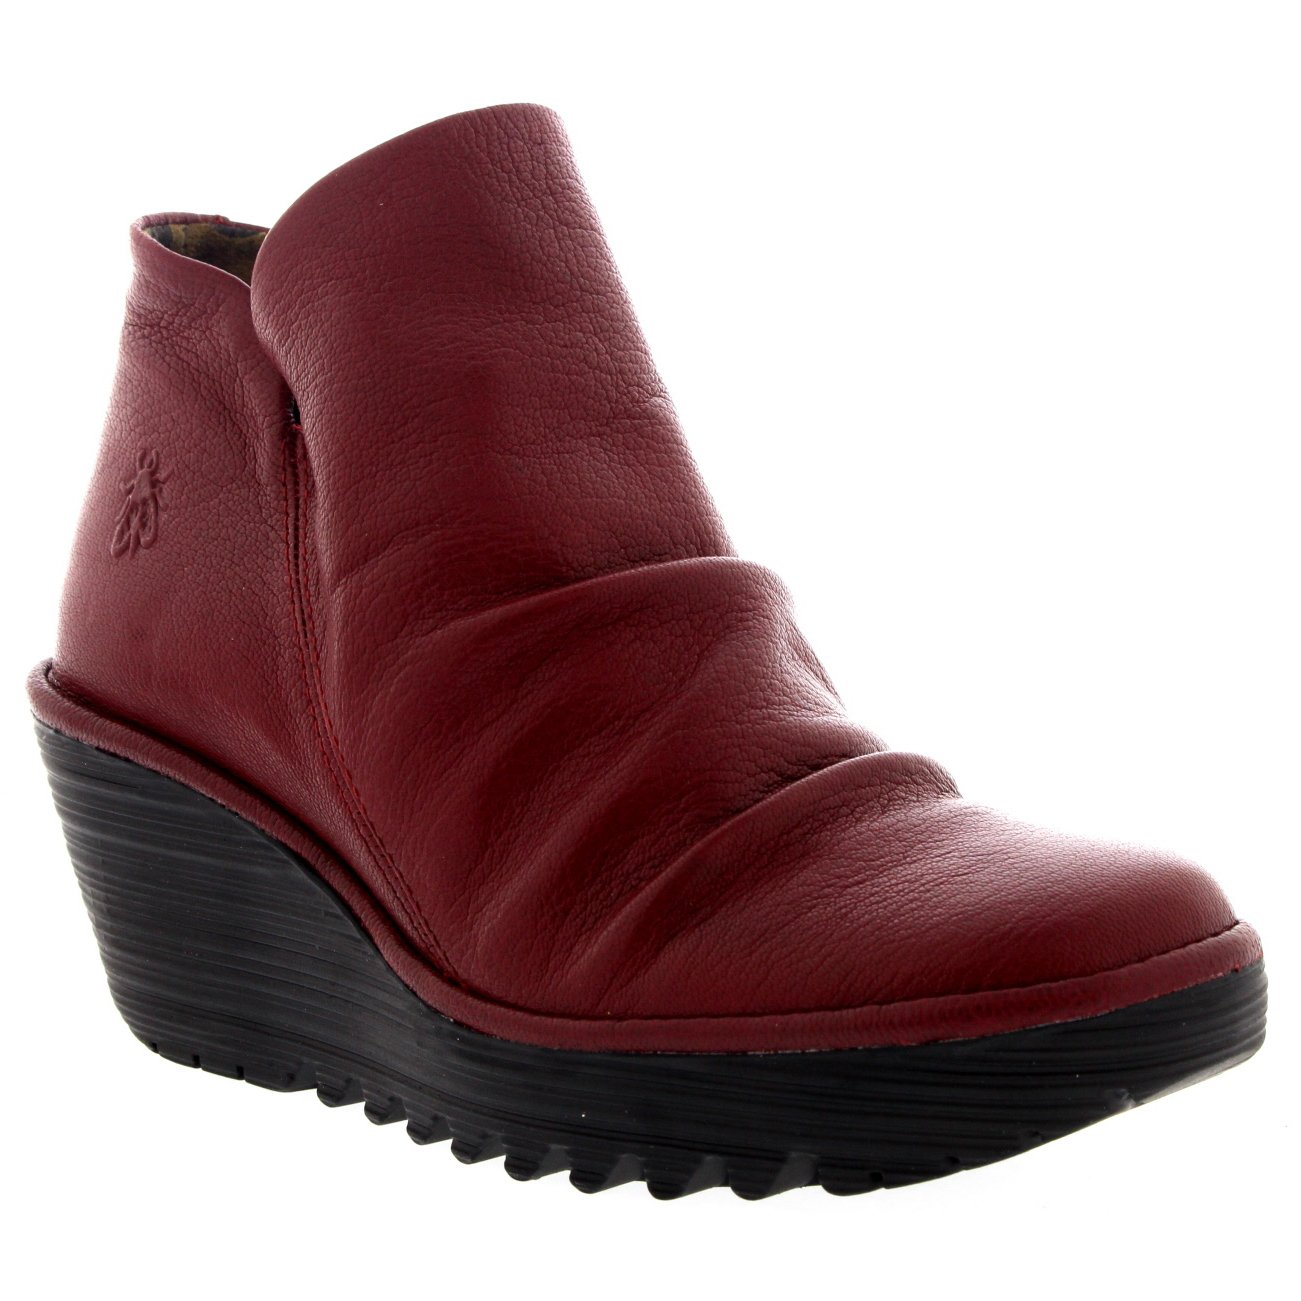 FLY London Womens Yip Mousse Casual Wedge Heel Winter Leather Ankle Boot - Cordoba Red - 11